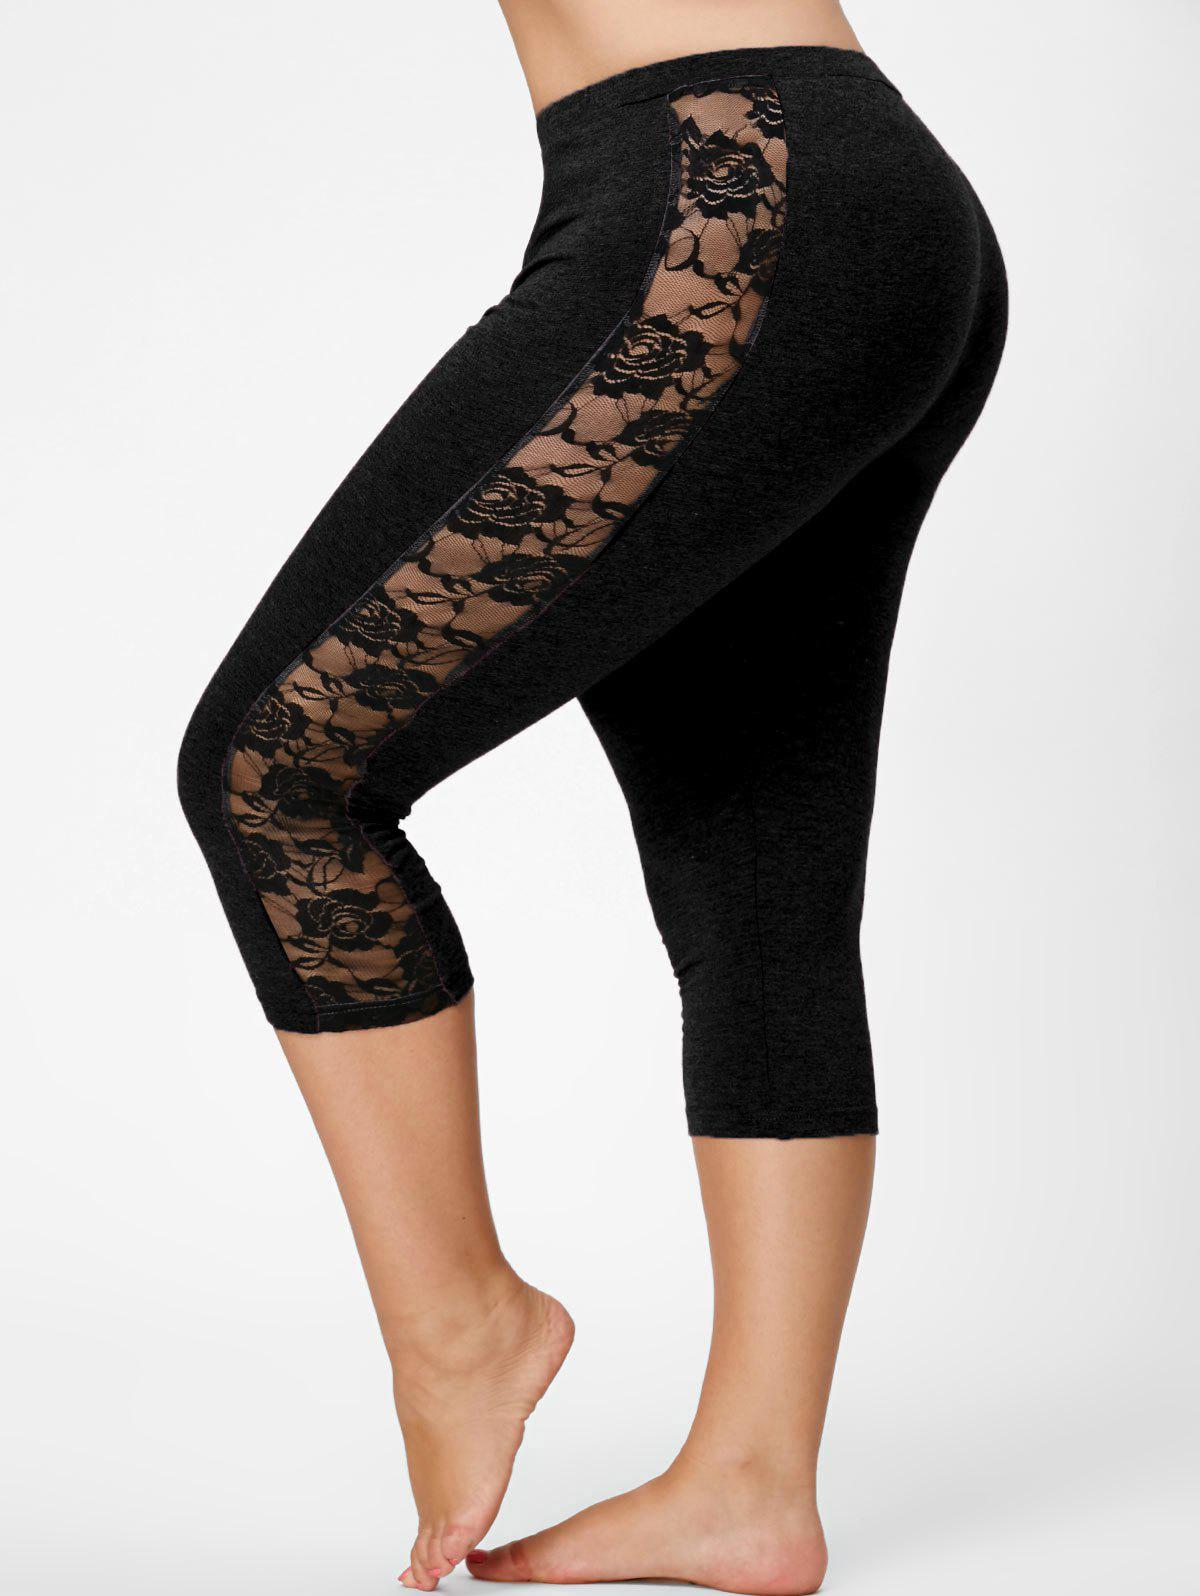 Mesh Panel Lace Plus Size Cropped LeggingsWOMEN<br><br>Size: 2XL; Color: BLACK; Style: Active; Length: Capri; Material: Polyester,Spandex; Fit Type: Skinny; Waist Type: Mid; Closure Type: Elastic Waist; Pattern Type: Solid; Pant Style: Pencil Pants; Weight: 0.2350kg; Package Contents: 1 x Leggings;